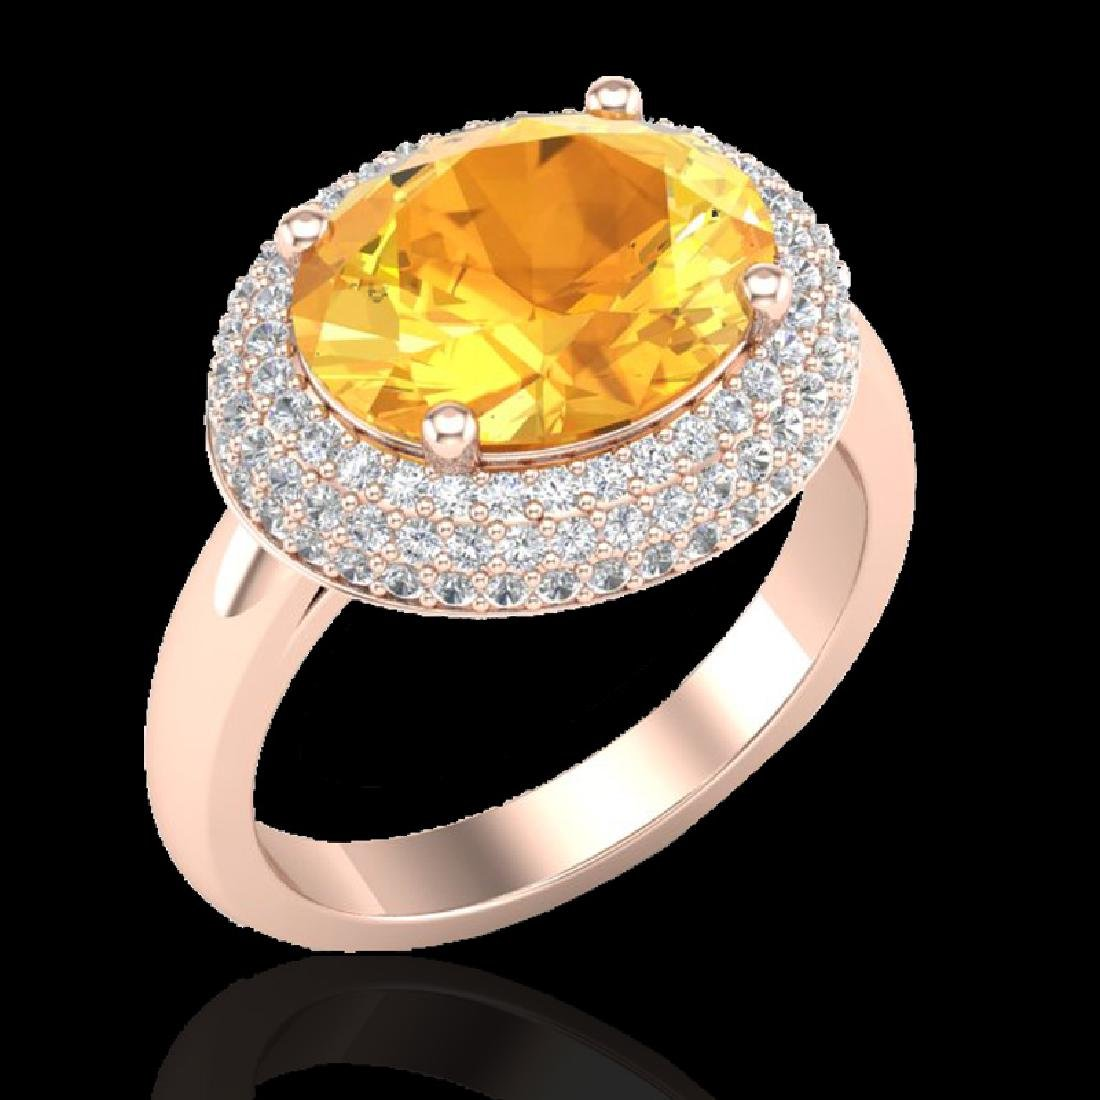 4 CTW Citrine & Micro Pave VS/SI Diamond Ring 14K Rose